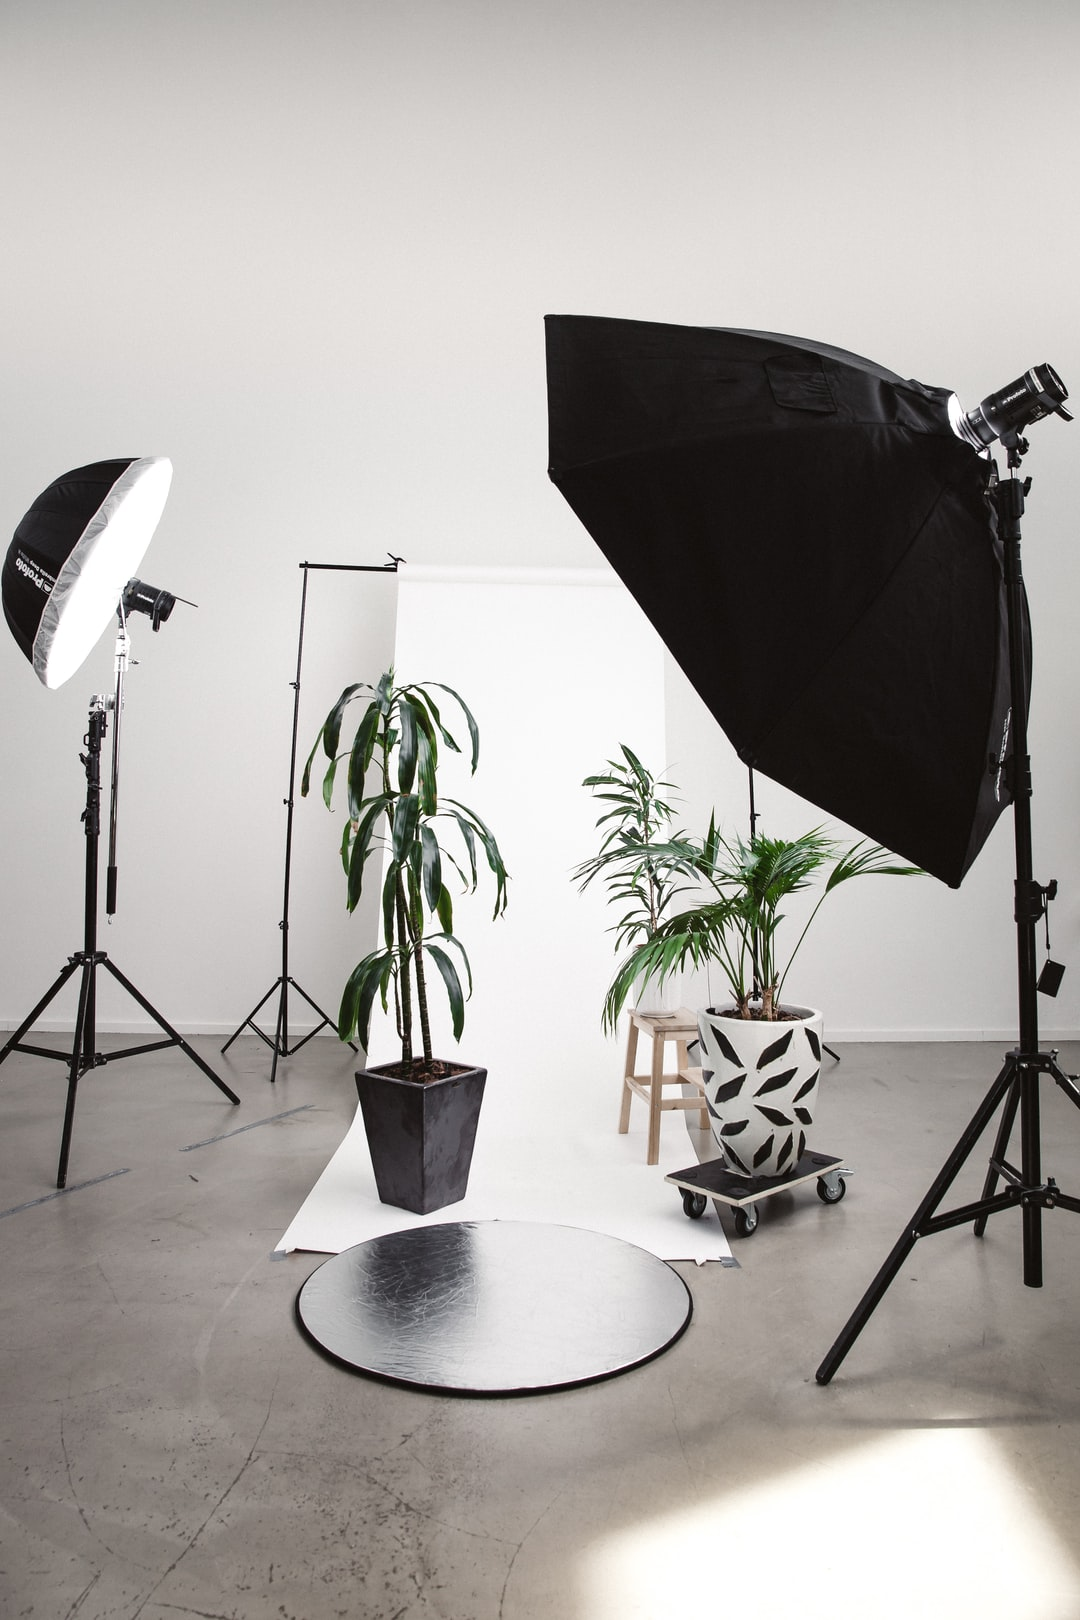 Photo Studio setup